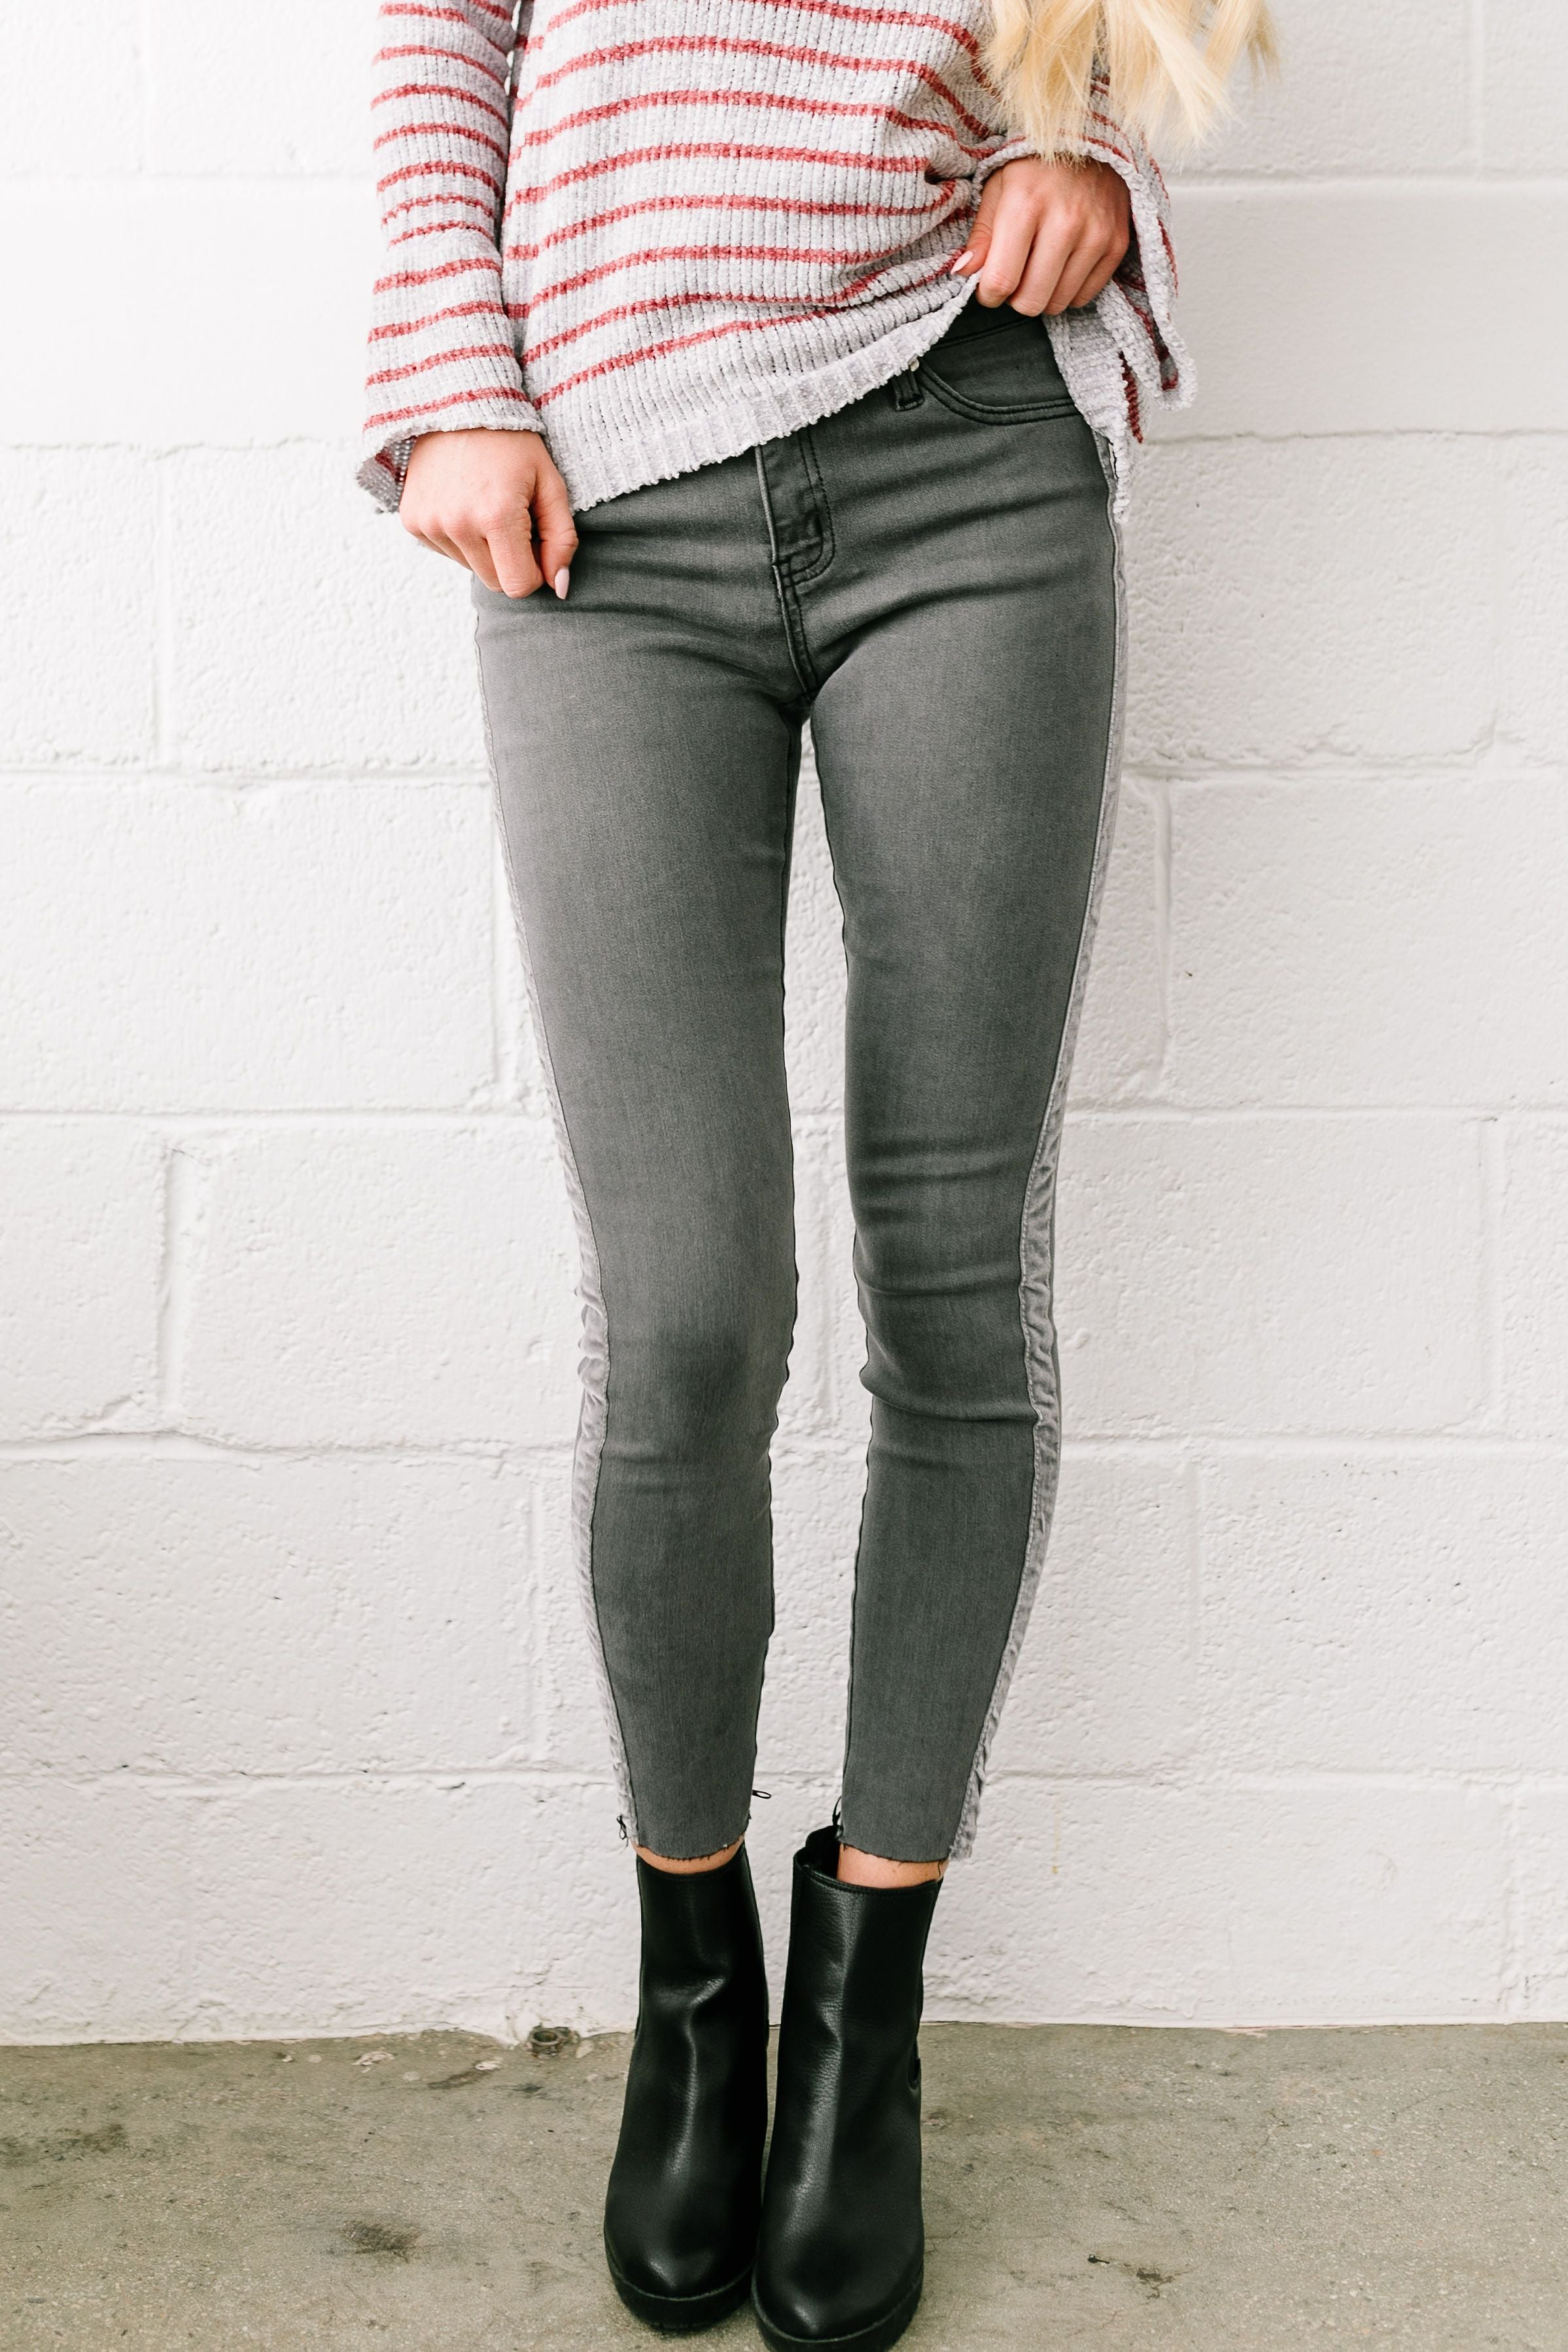 Las Velvet Strip Dark Gray Skinny Jeans - ALL SALES FINAL